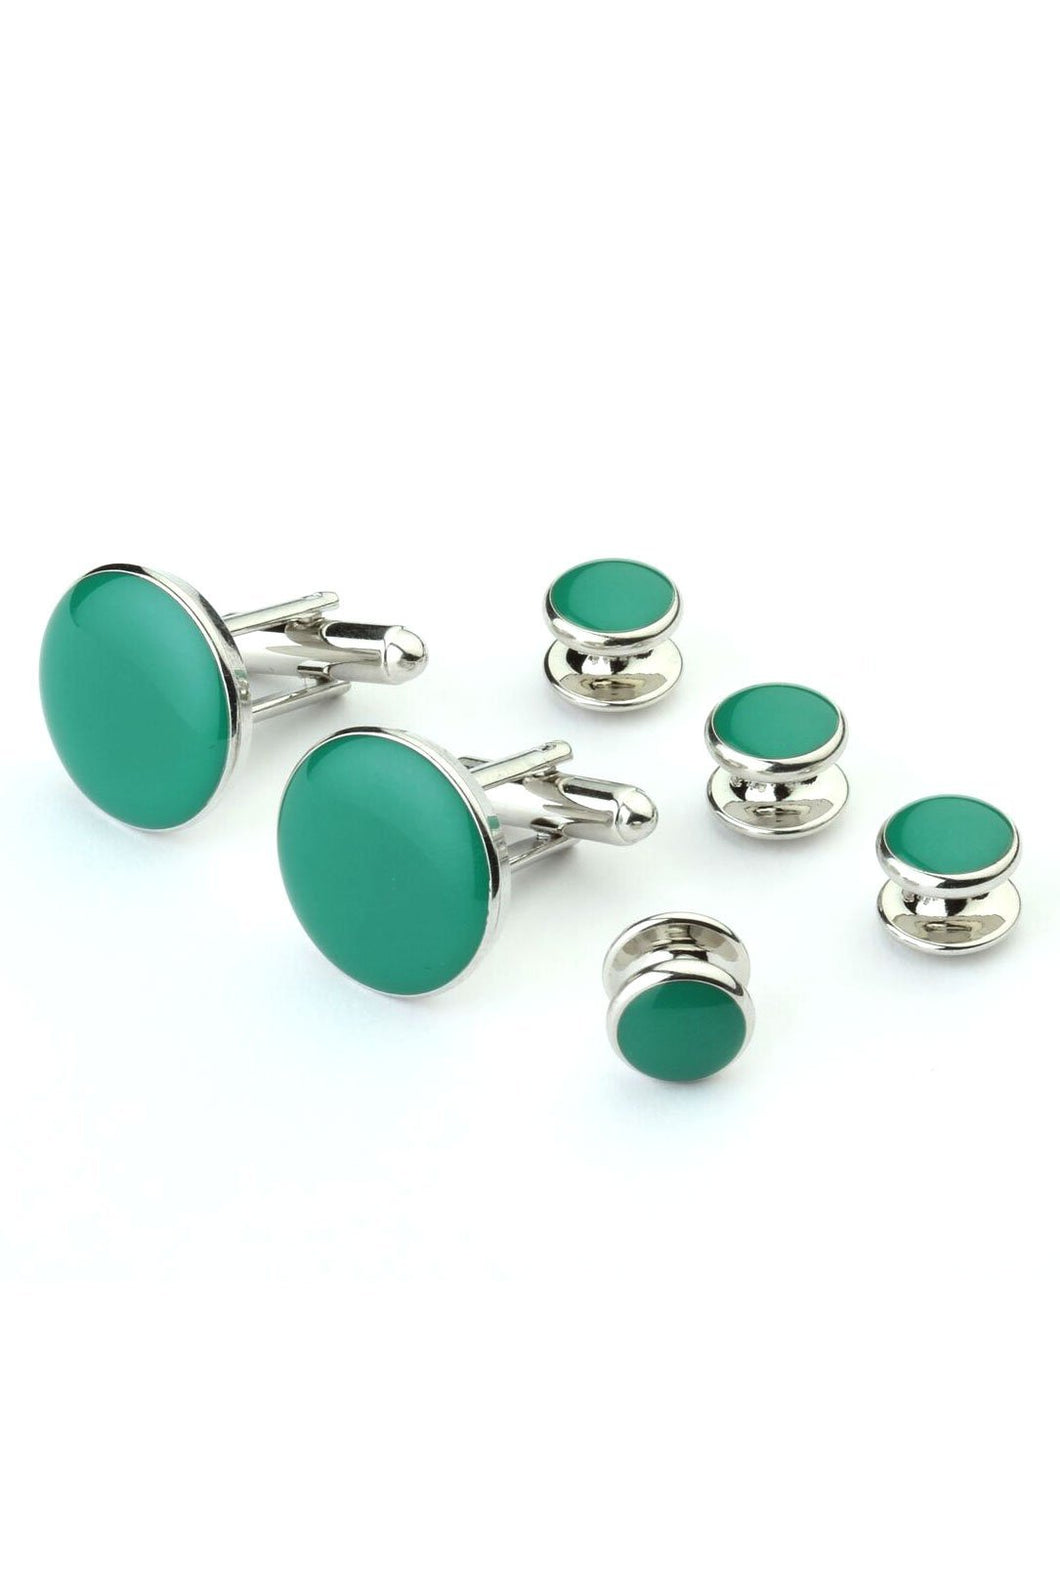 Green with Silver Trim Studs and Cufflinks Set